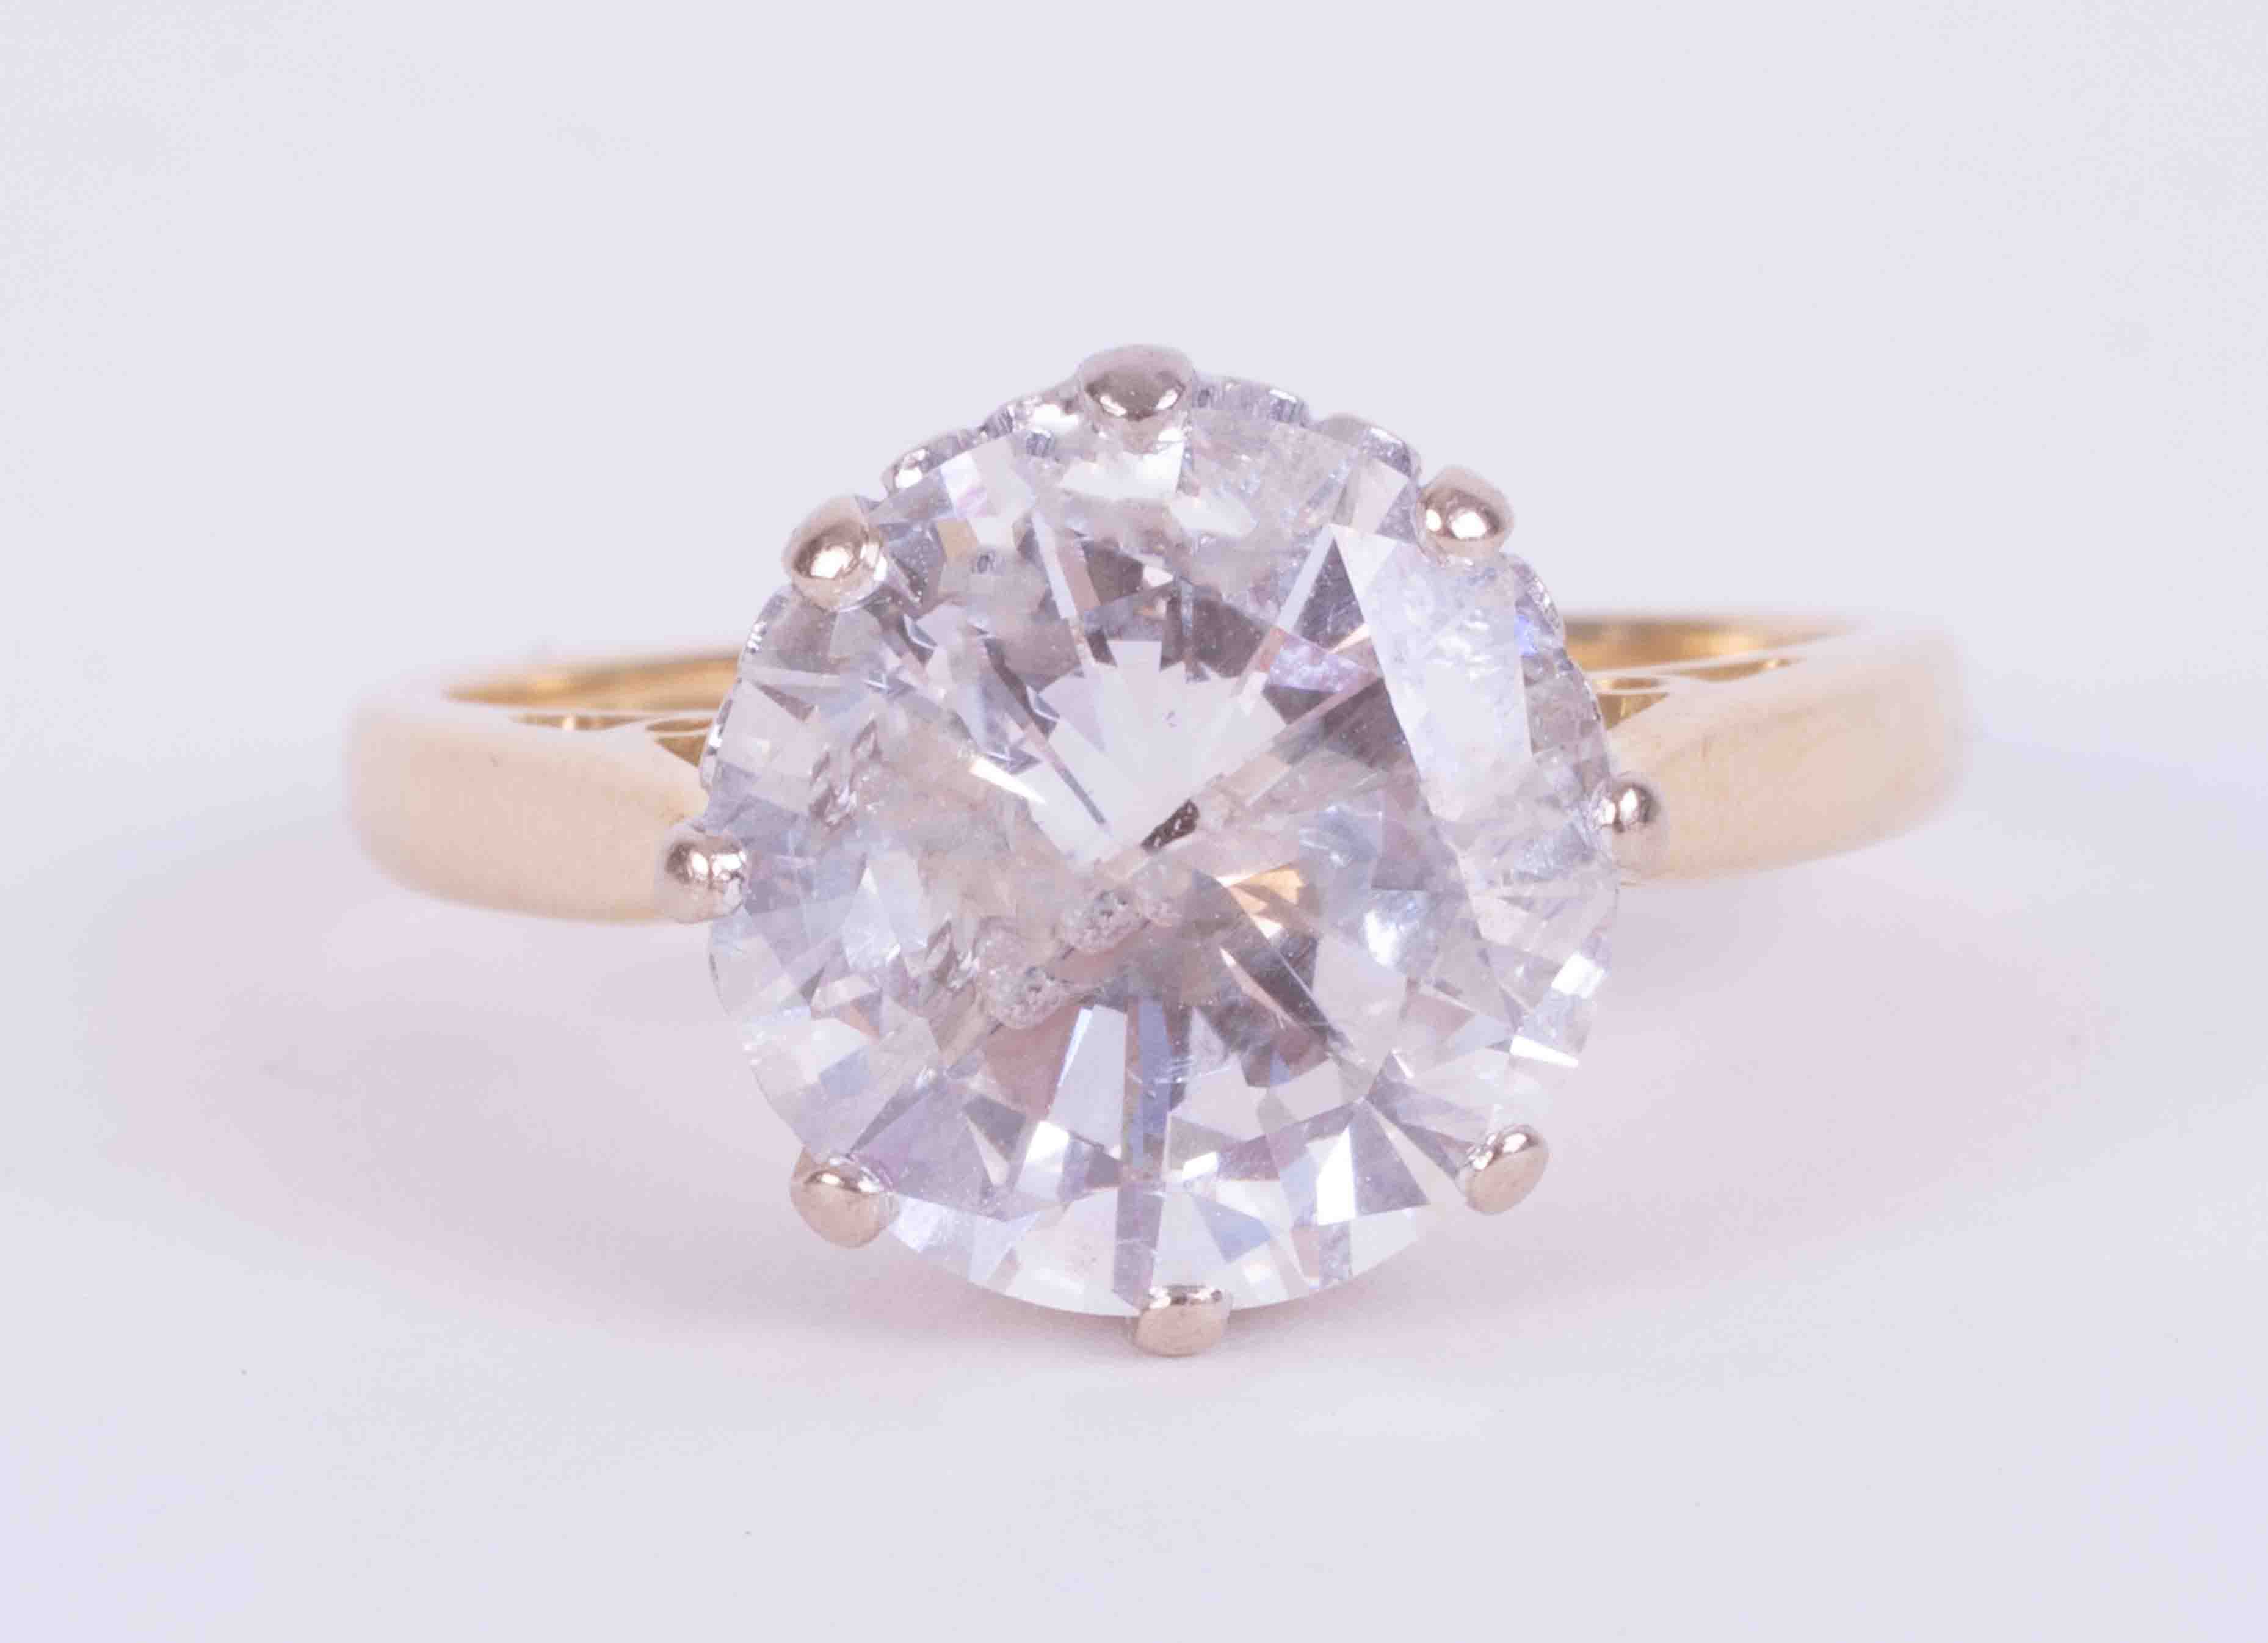 An impressive 18ct yellow & white gold diamond solitaire ring set with approx. 4.00 carats of